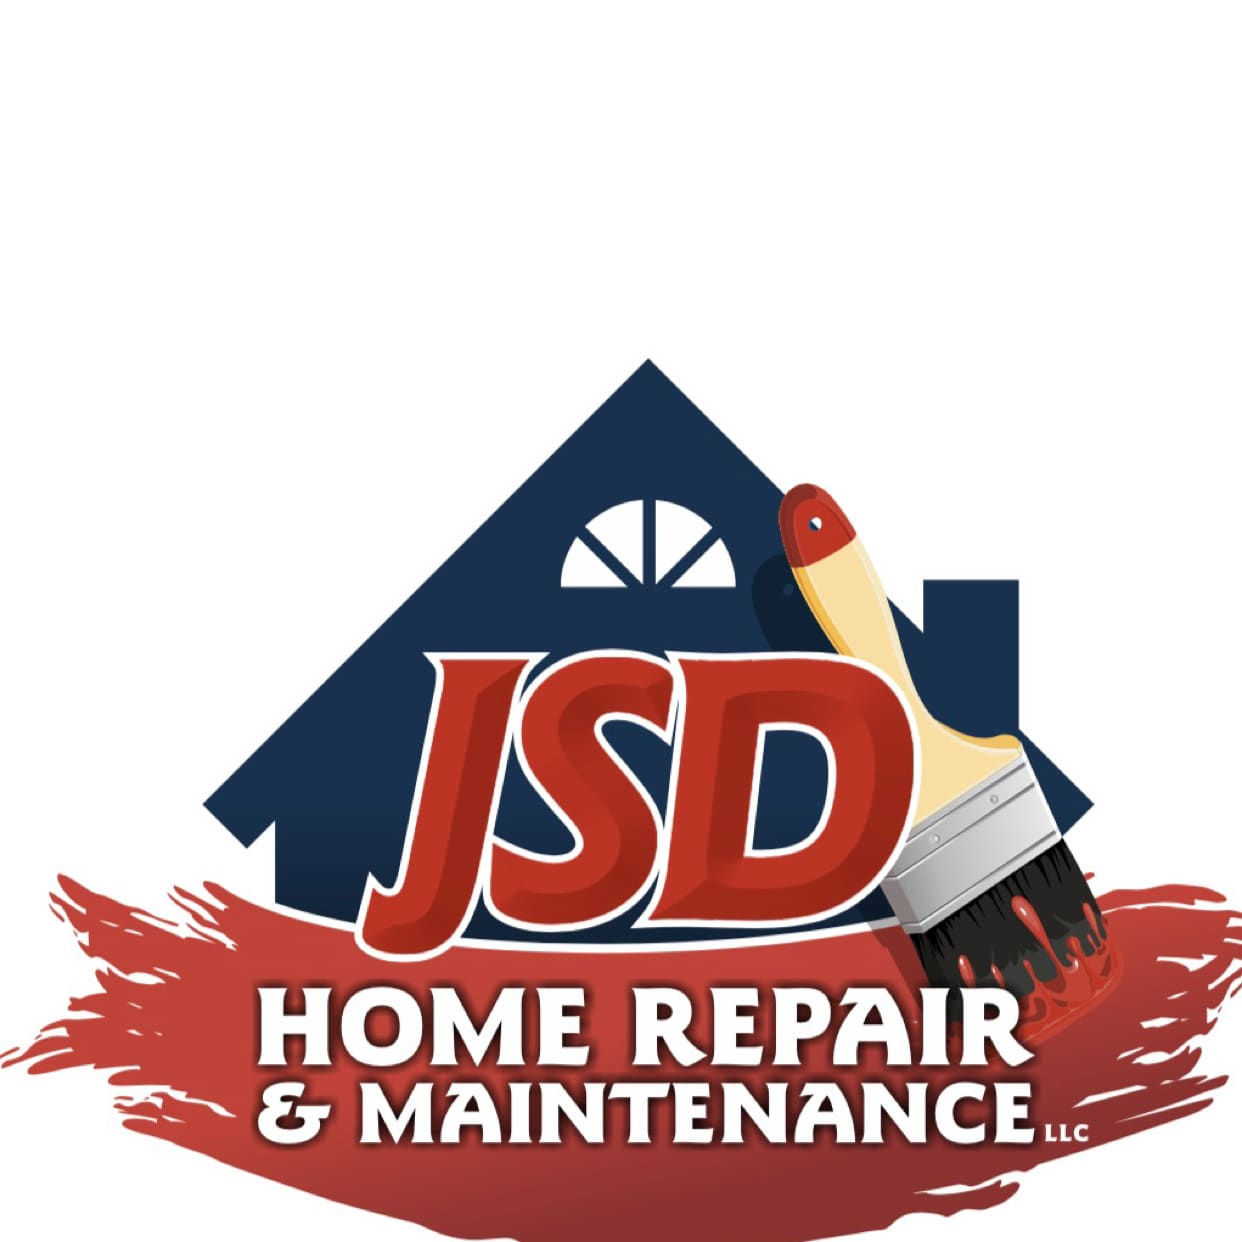 JSD Home Repair